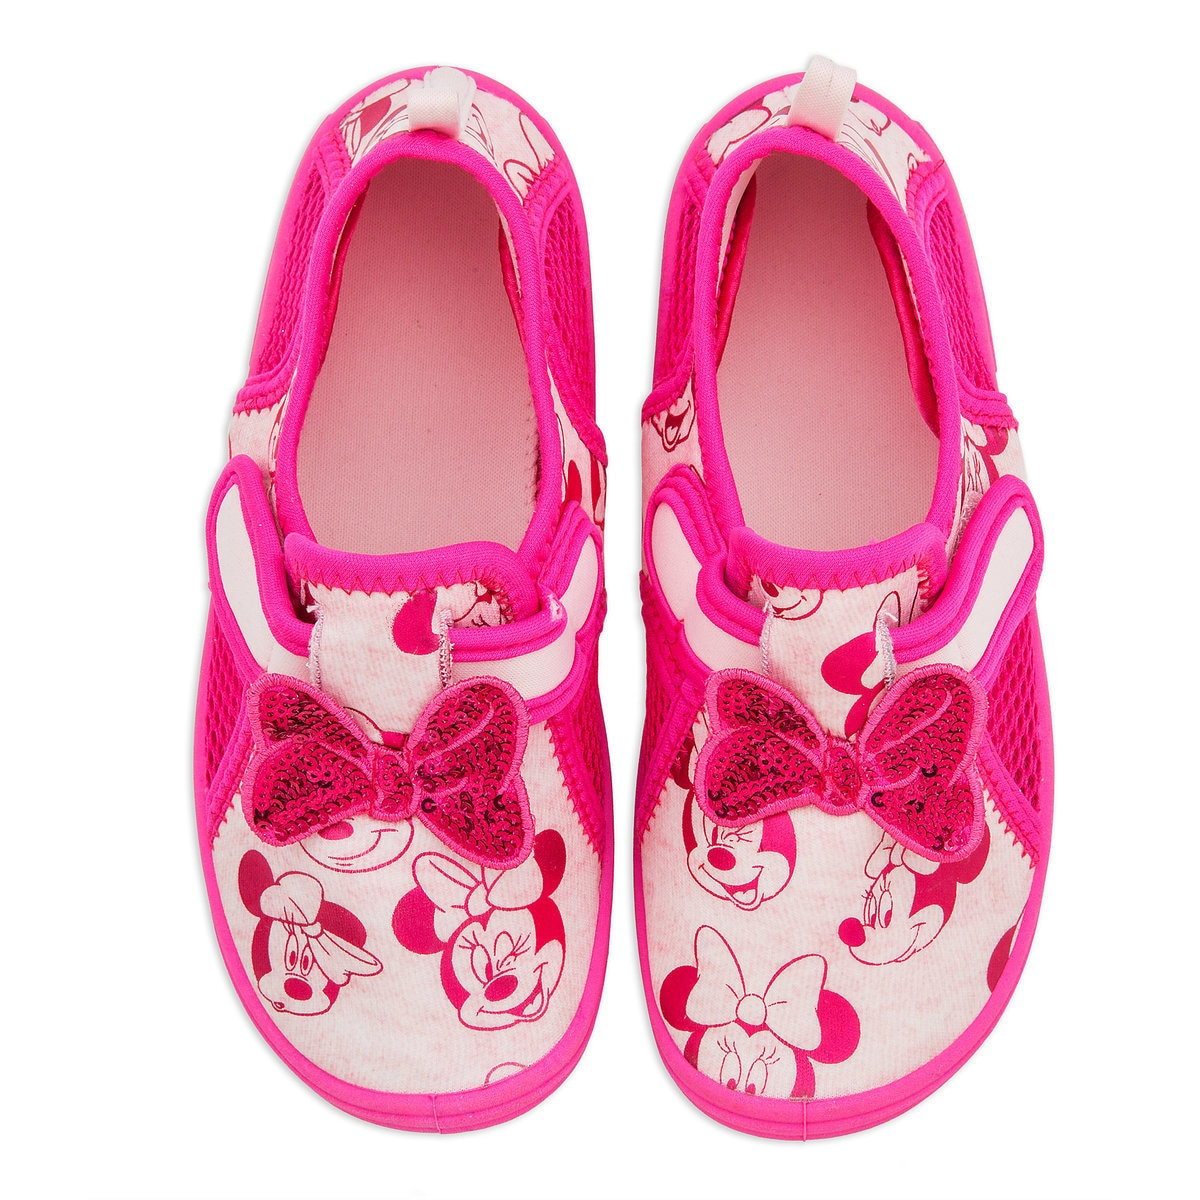 Product Image of Minnie Mouse Pink Swim Shoes for Kids # 3